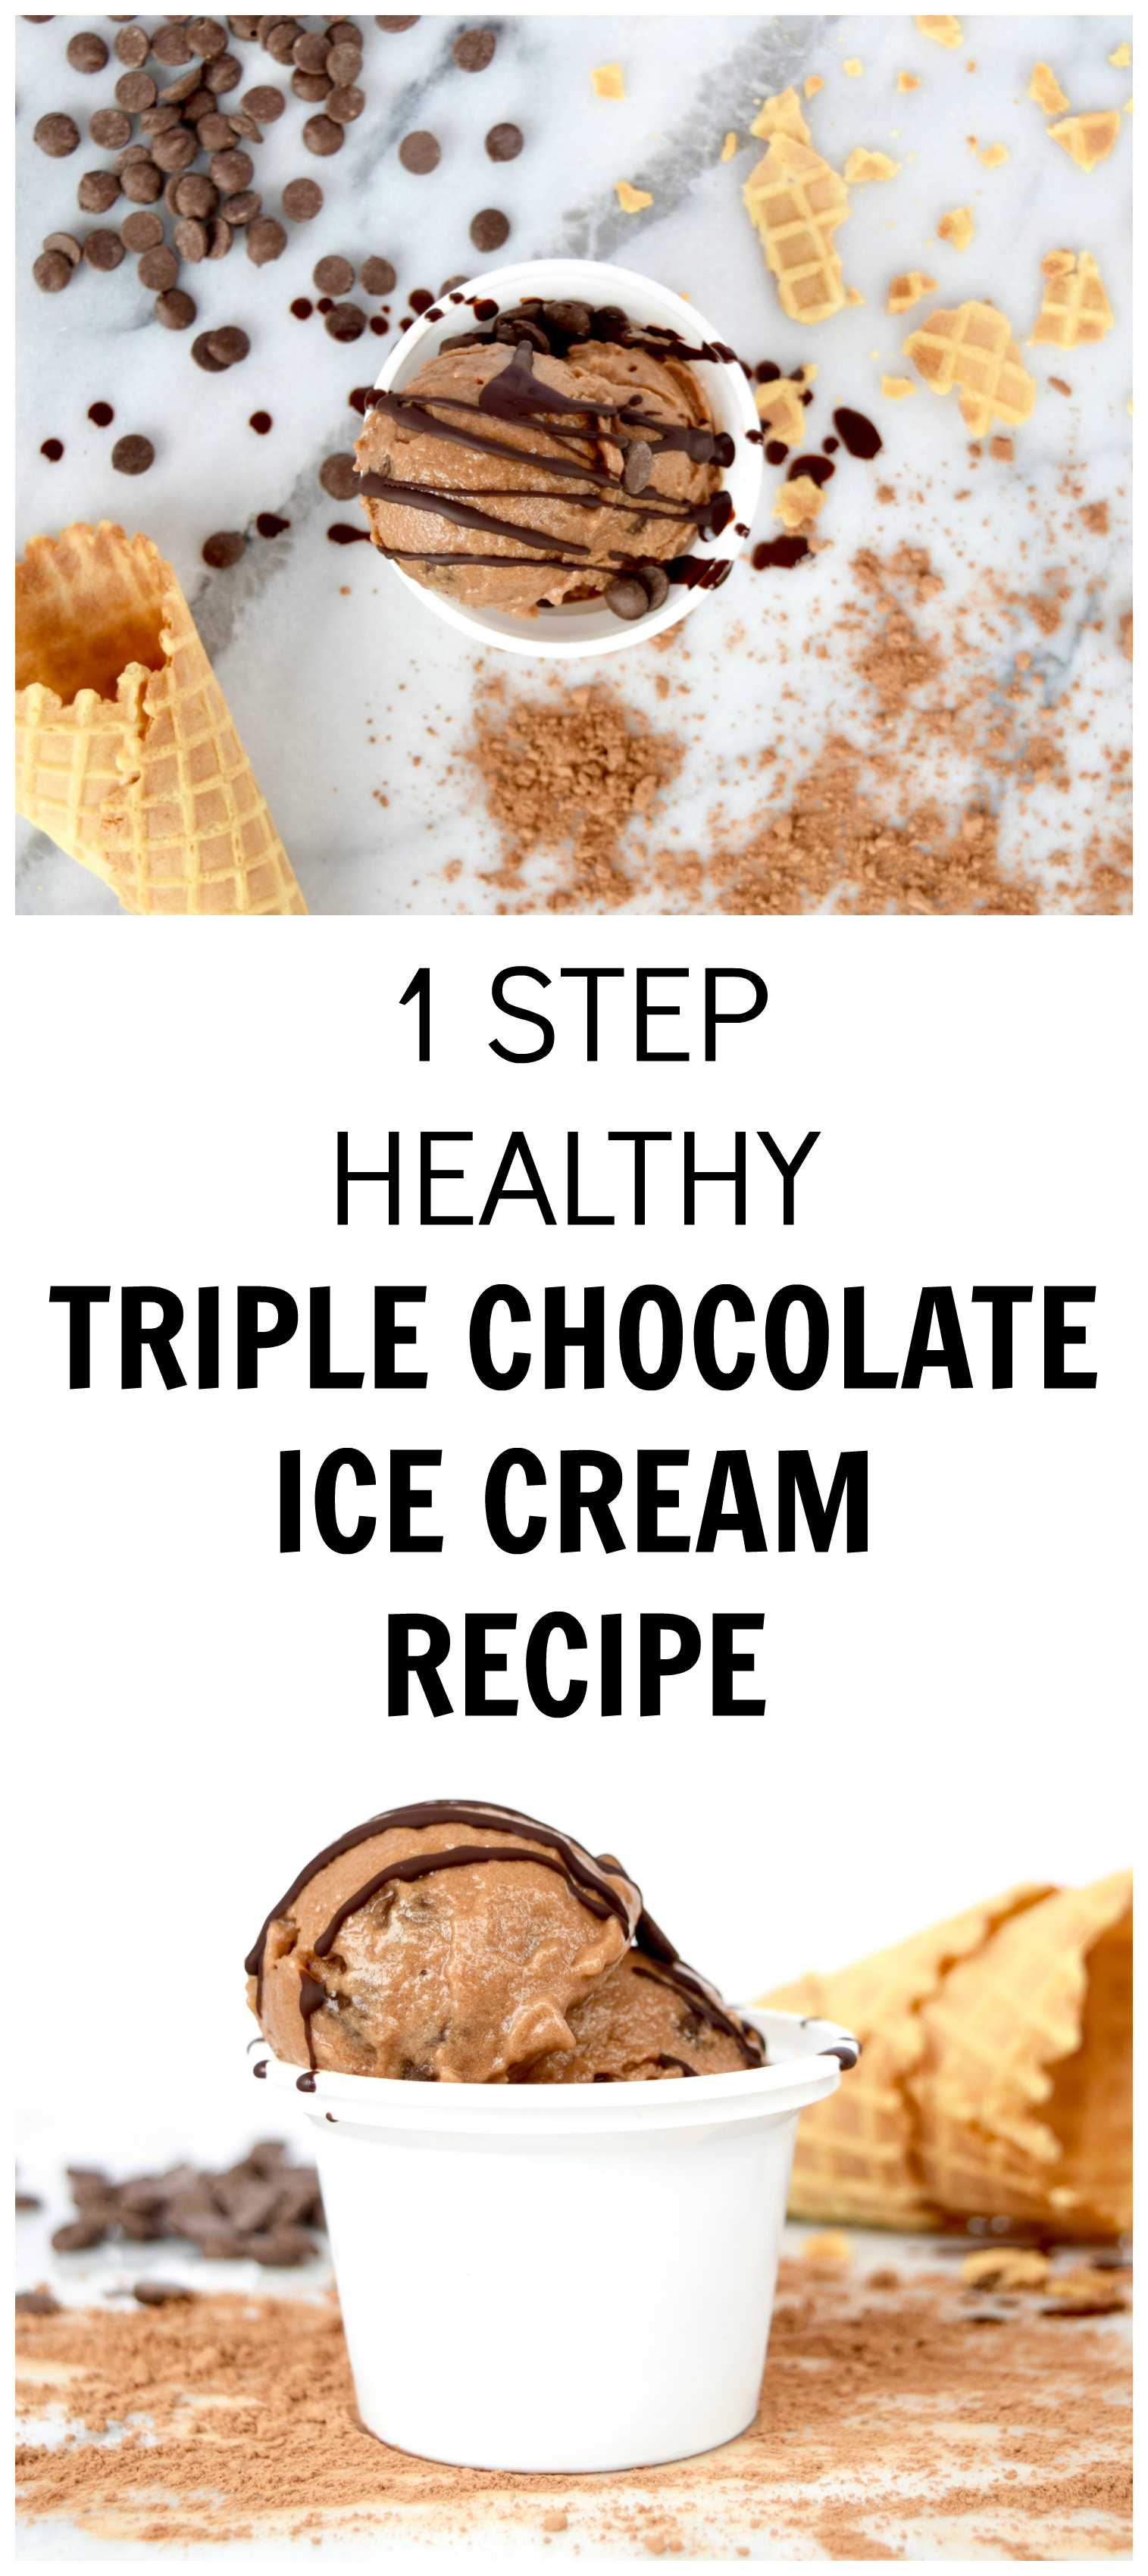 1 STEP HEALTHY TRIPLE CHOCOLATE ICE CREAM RECIPE